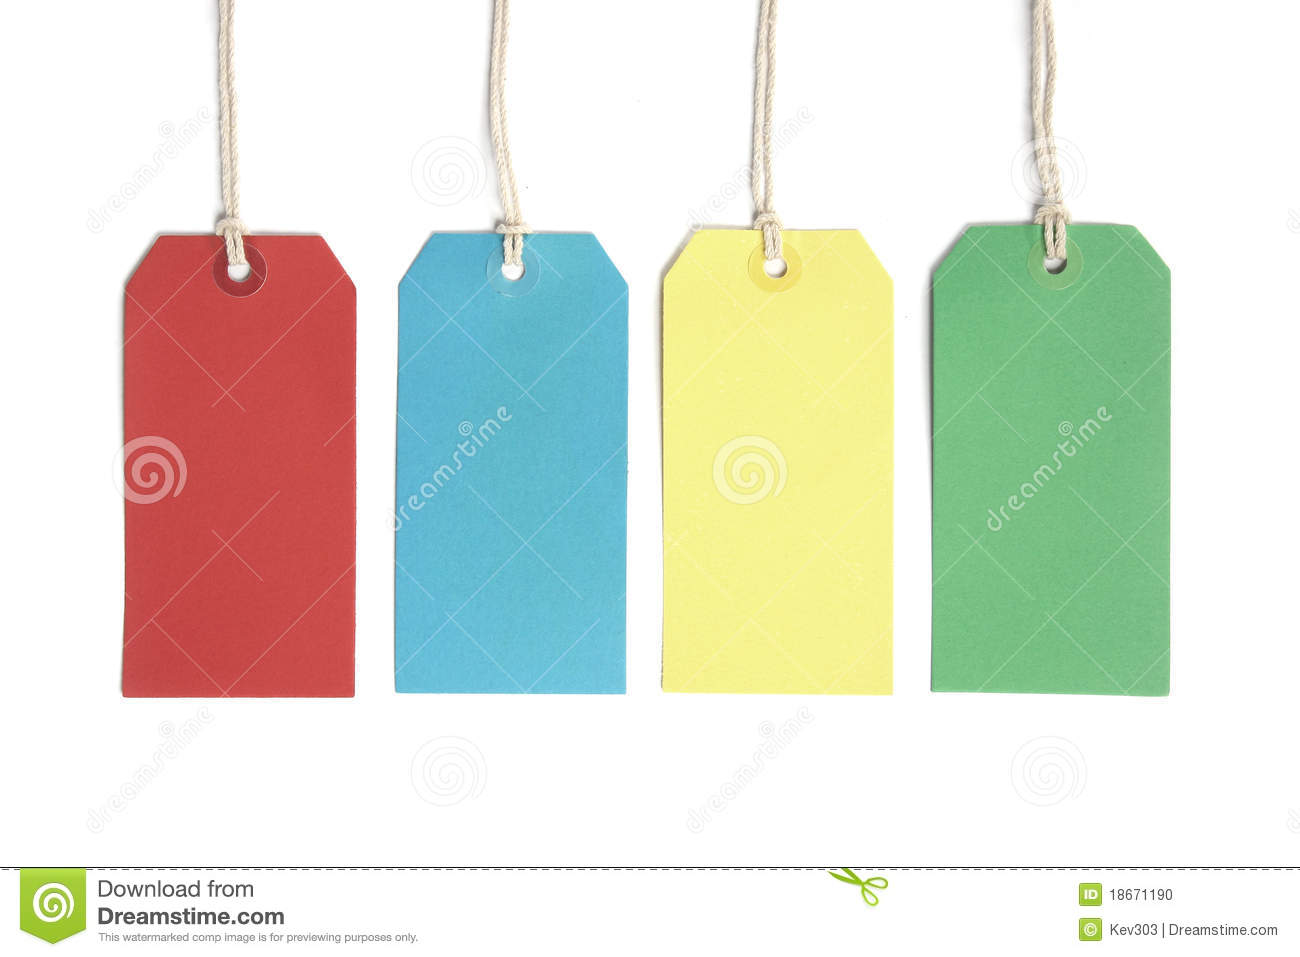 Price tags or luggage labels